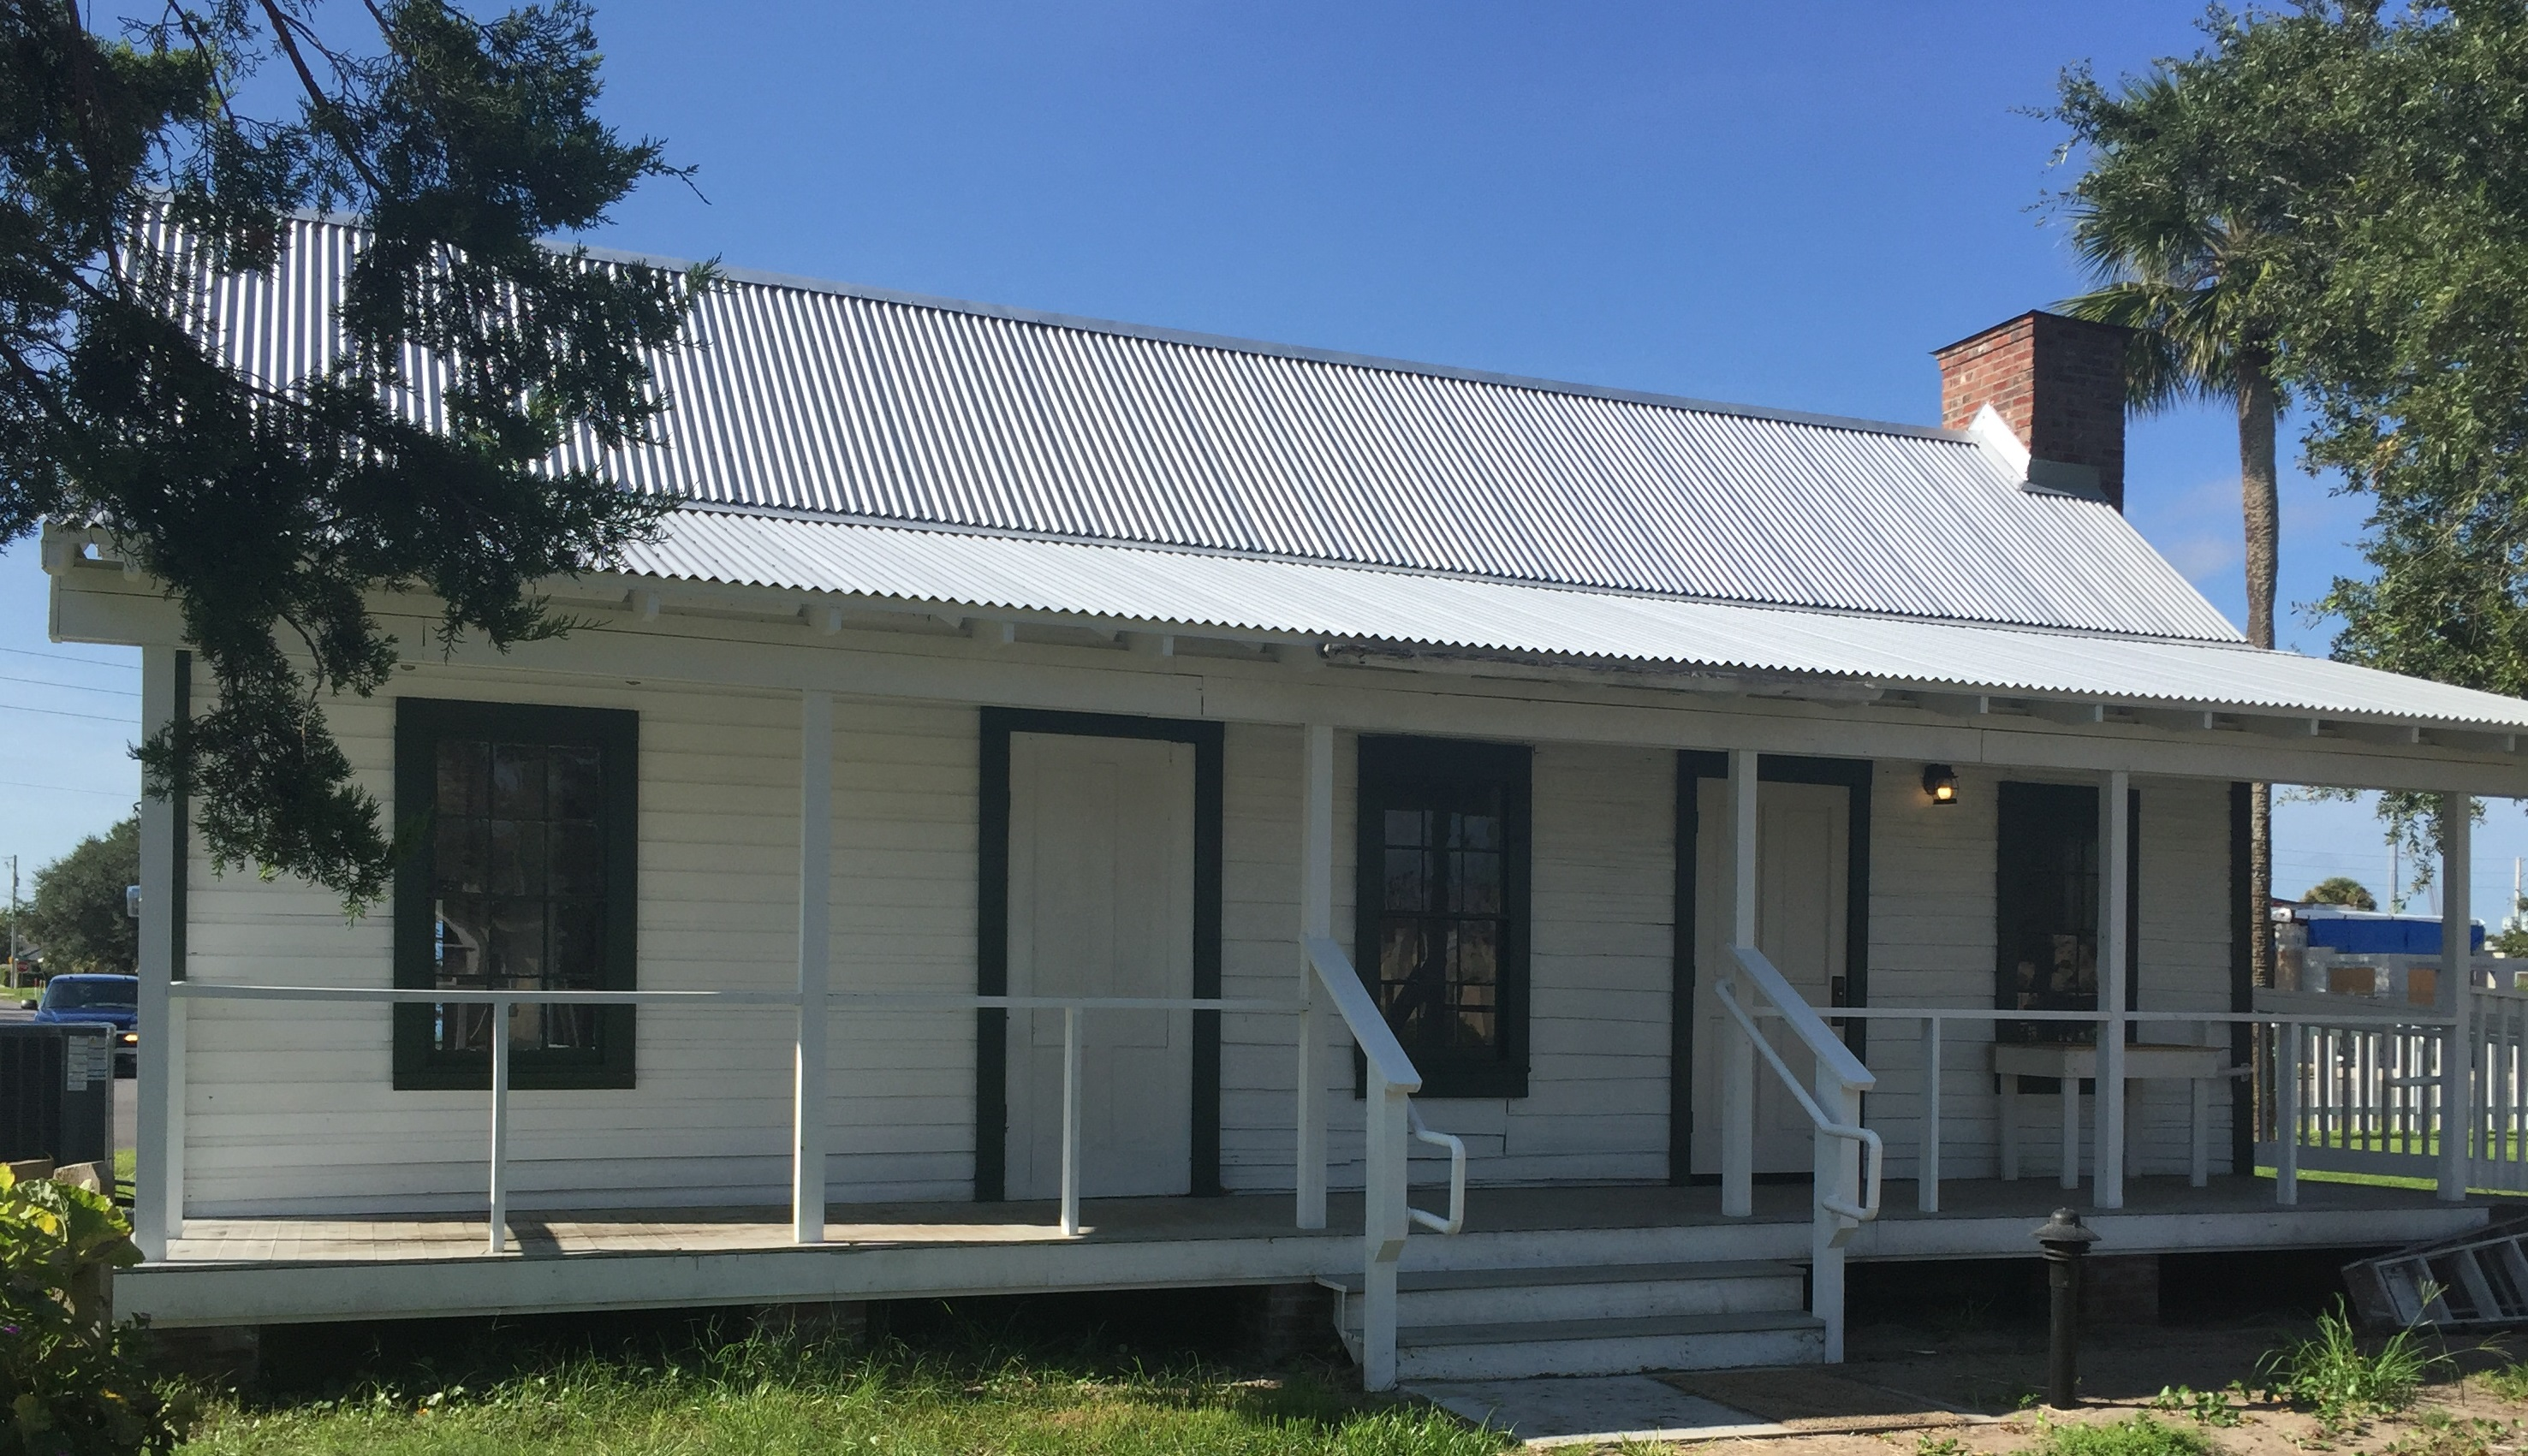 The Oesterreicher-McCormick Cabin Dedication